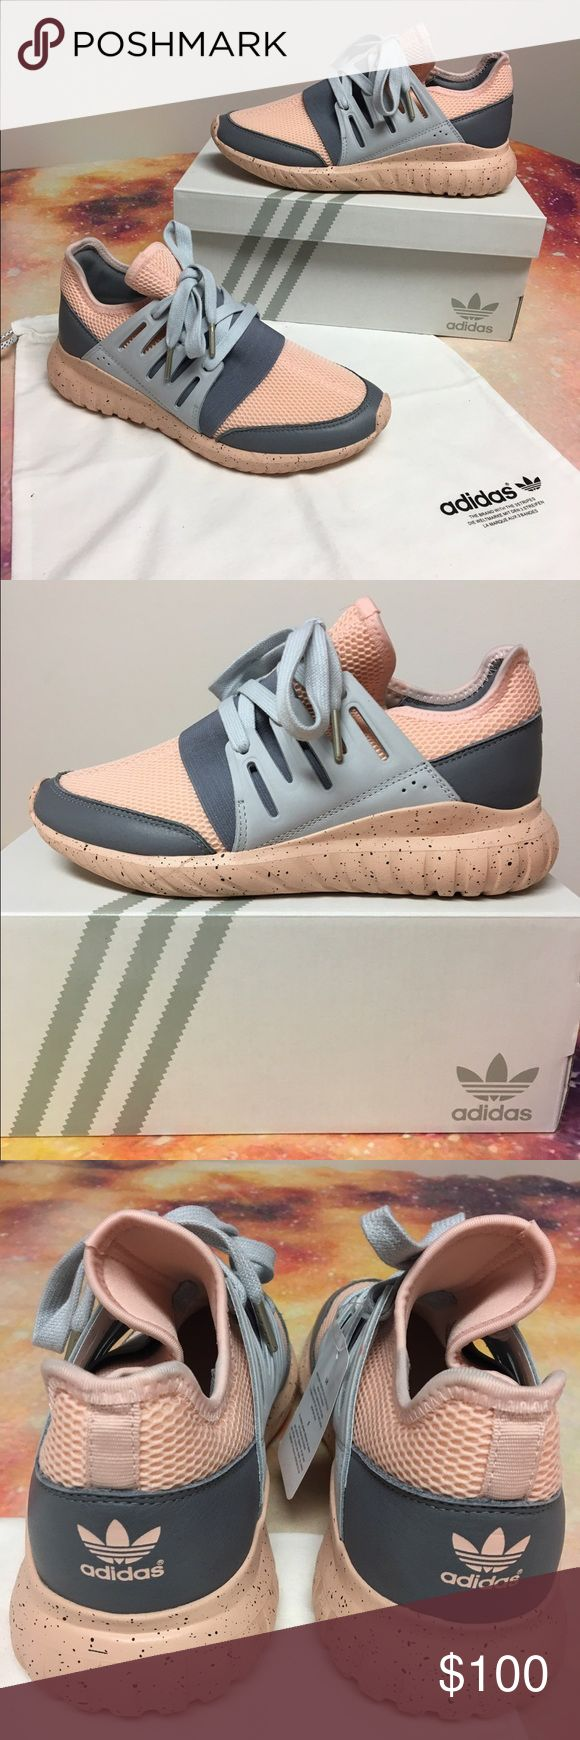 CUSTOM ADIDAS TUBULAR RADIAL SHOES Customized adidas tubular radial shoes in a size 7. Pink speckled sole with grey. Never worn!! Tags are still on and everything. Box and bag included. Super cute but the size just wasn't right :( originally $135 Adidas Shoes Sneakers